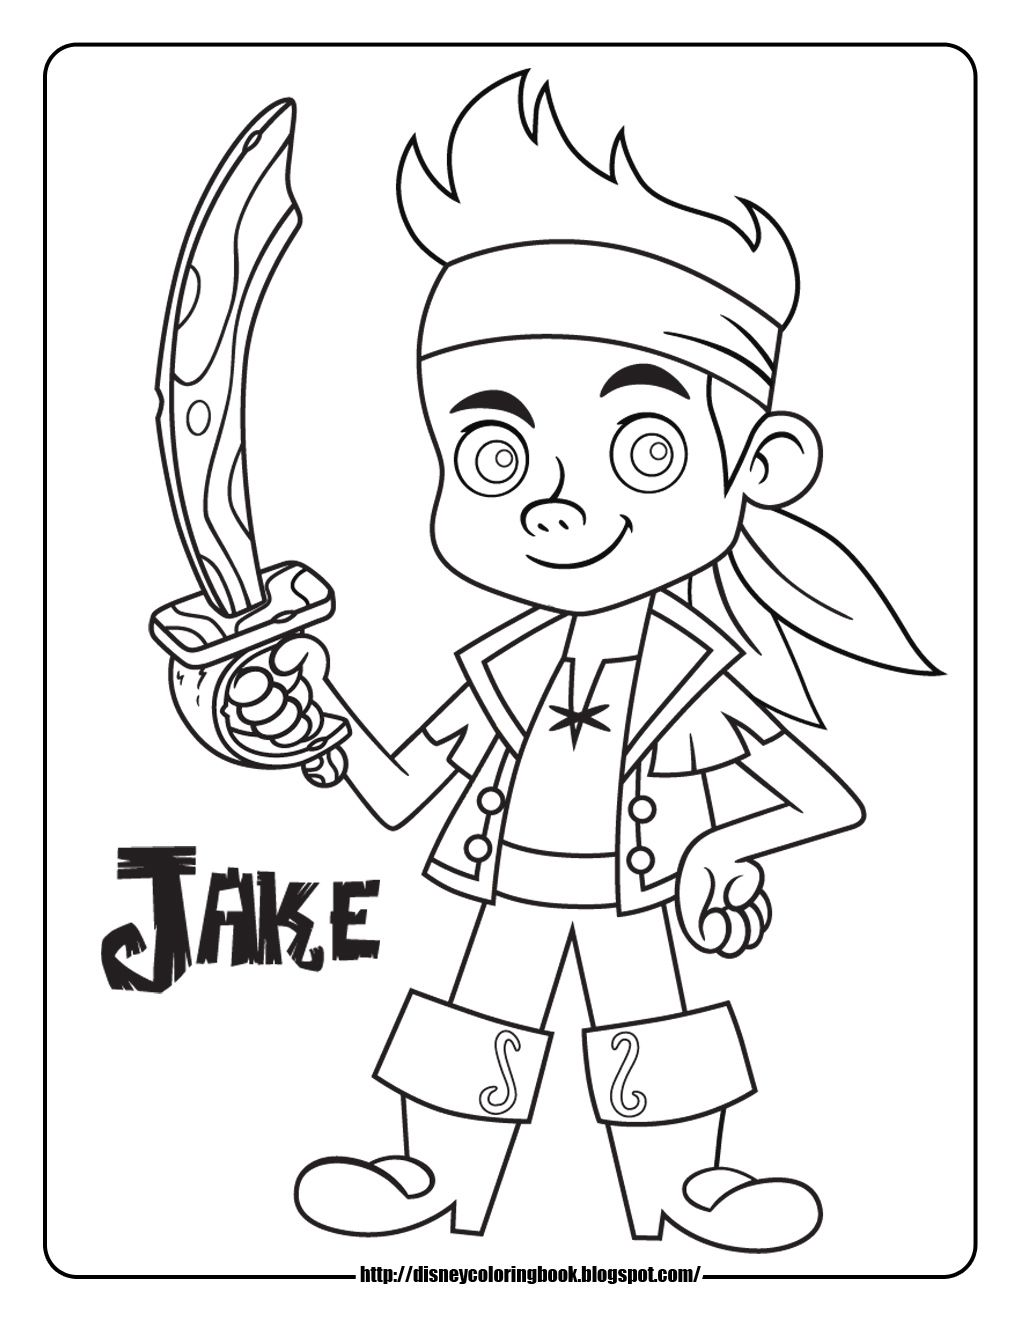 Geburtstag Pirat Ausmalbilder : Jake And The Never Land Pirates Coloring Pages Coloring Sheets Jake